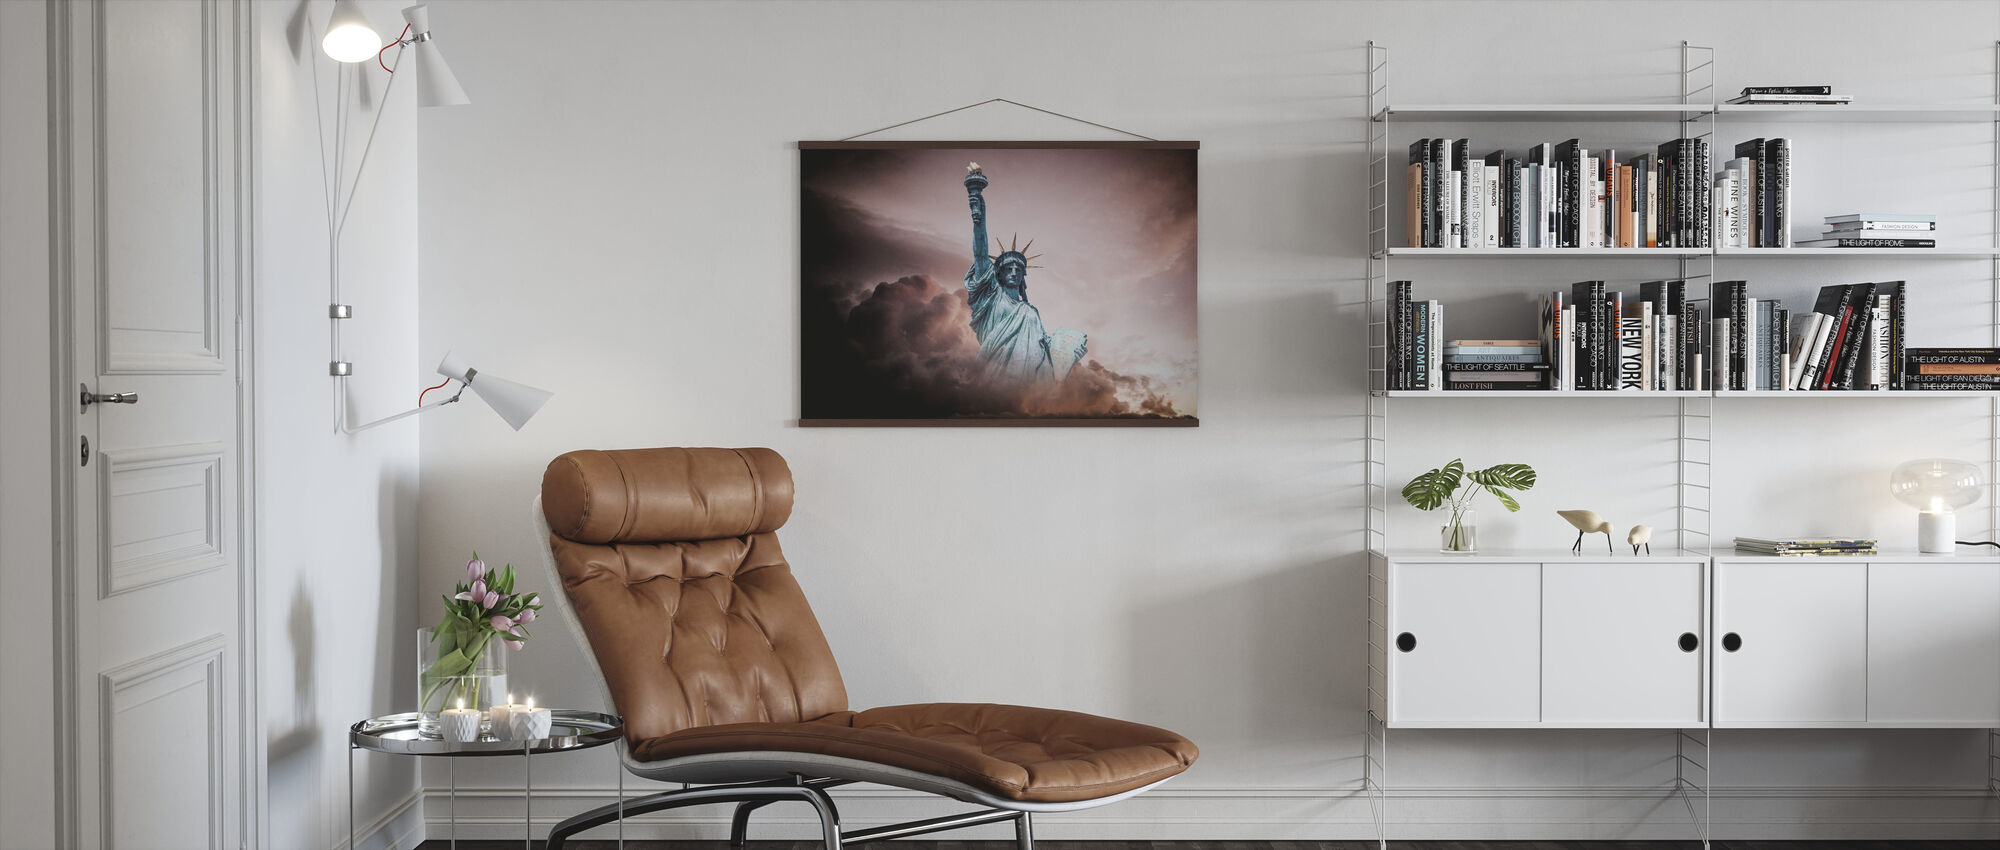 Statue of Liberty in Clouds - Poster - Living Room